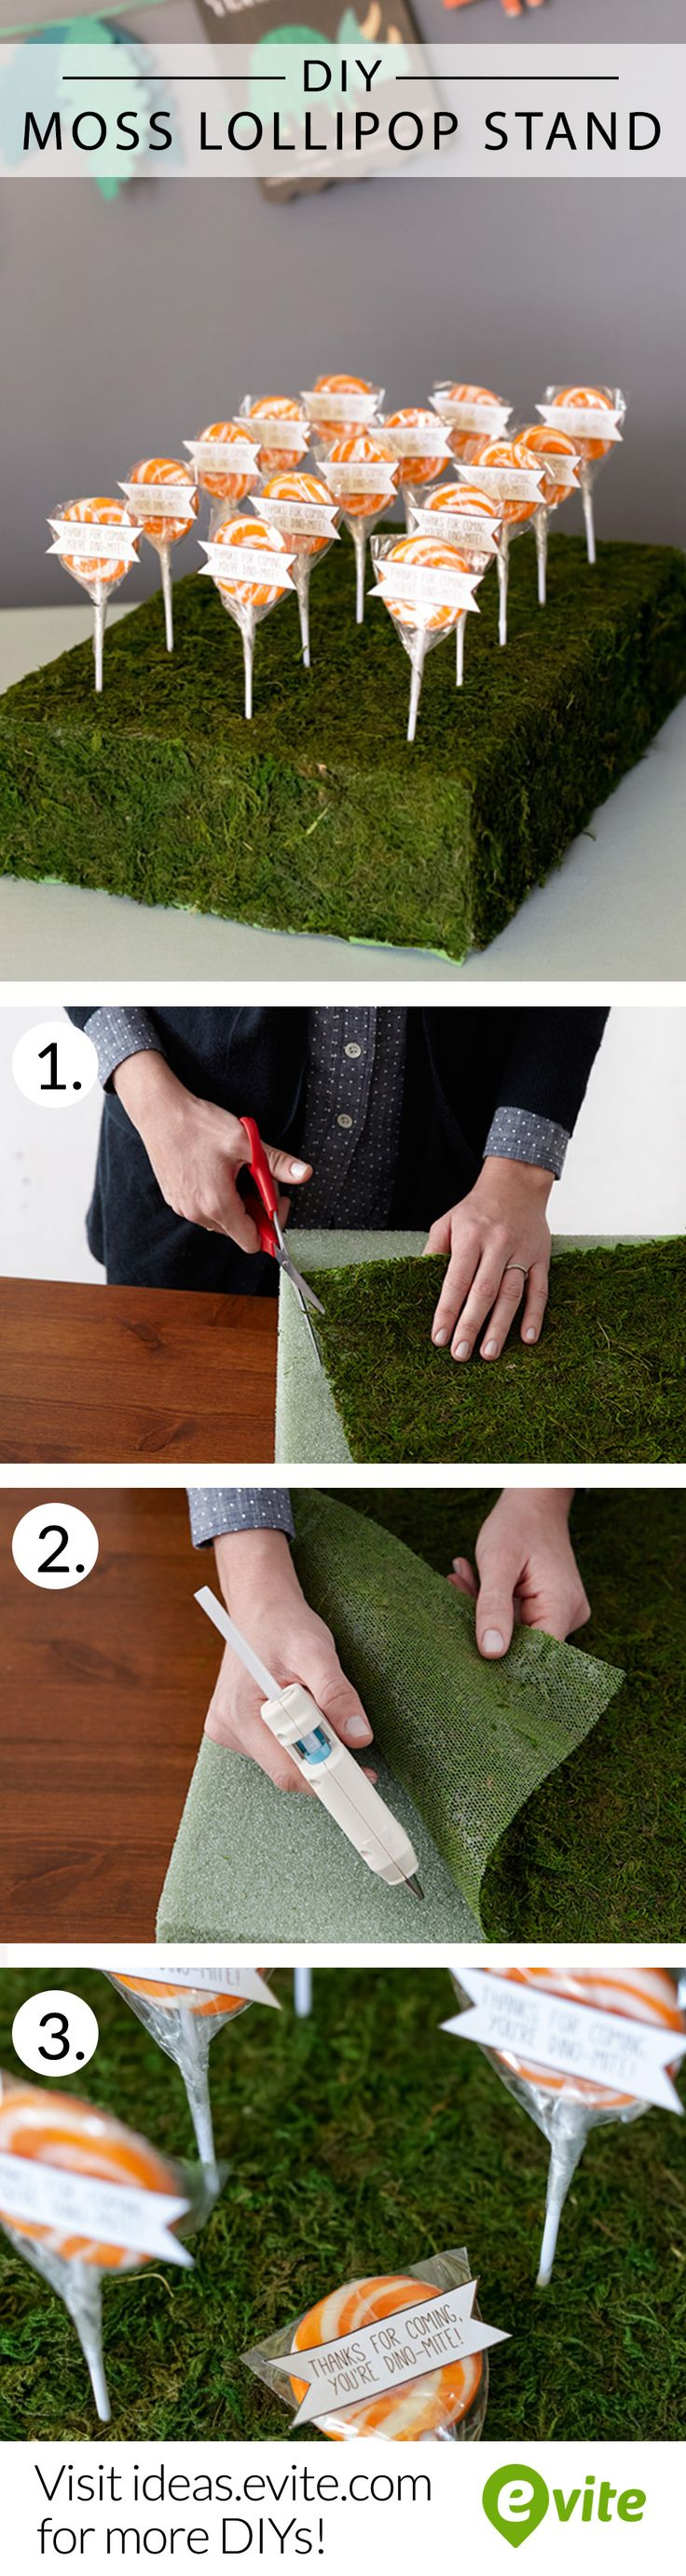 #DIY moss lollipop stand